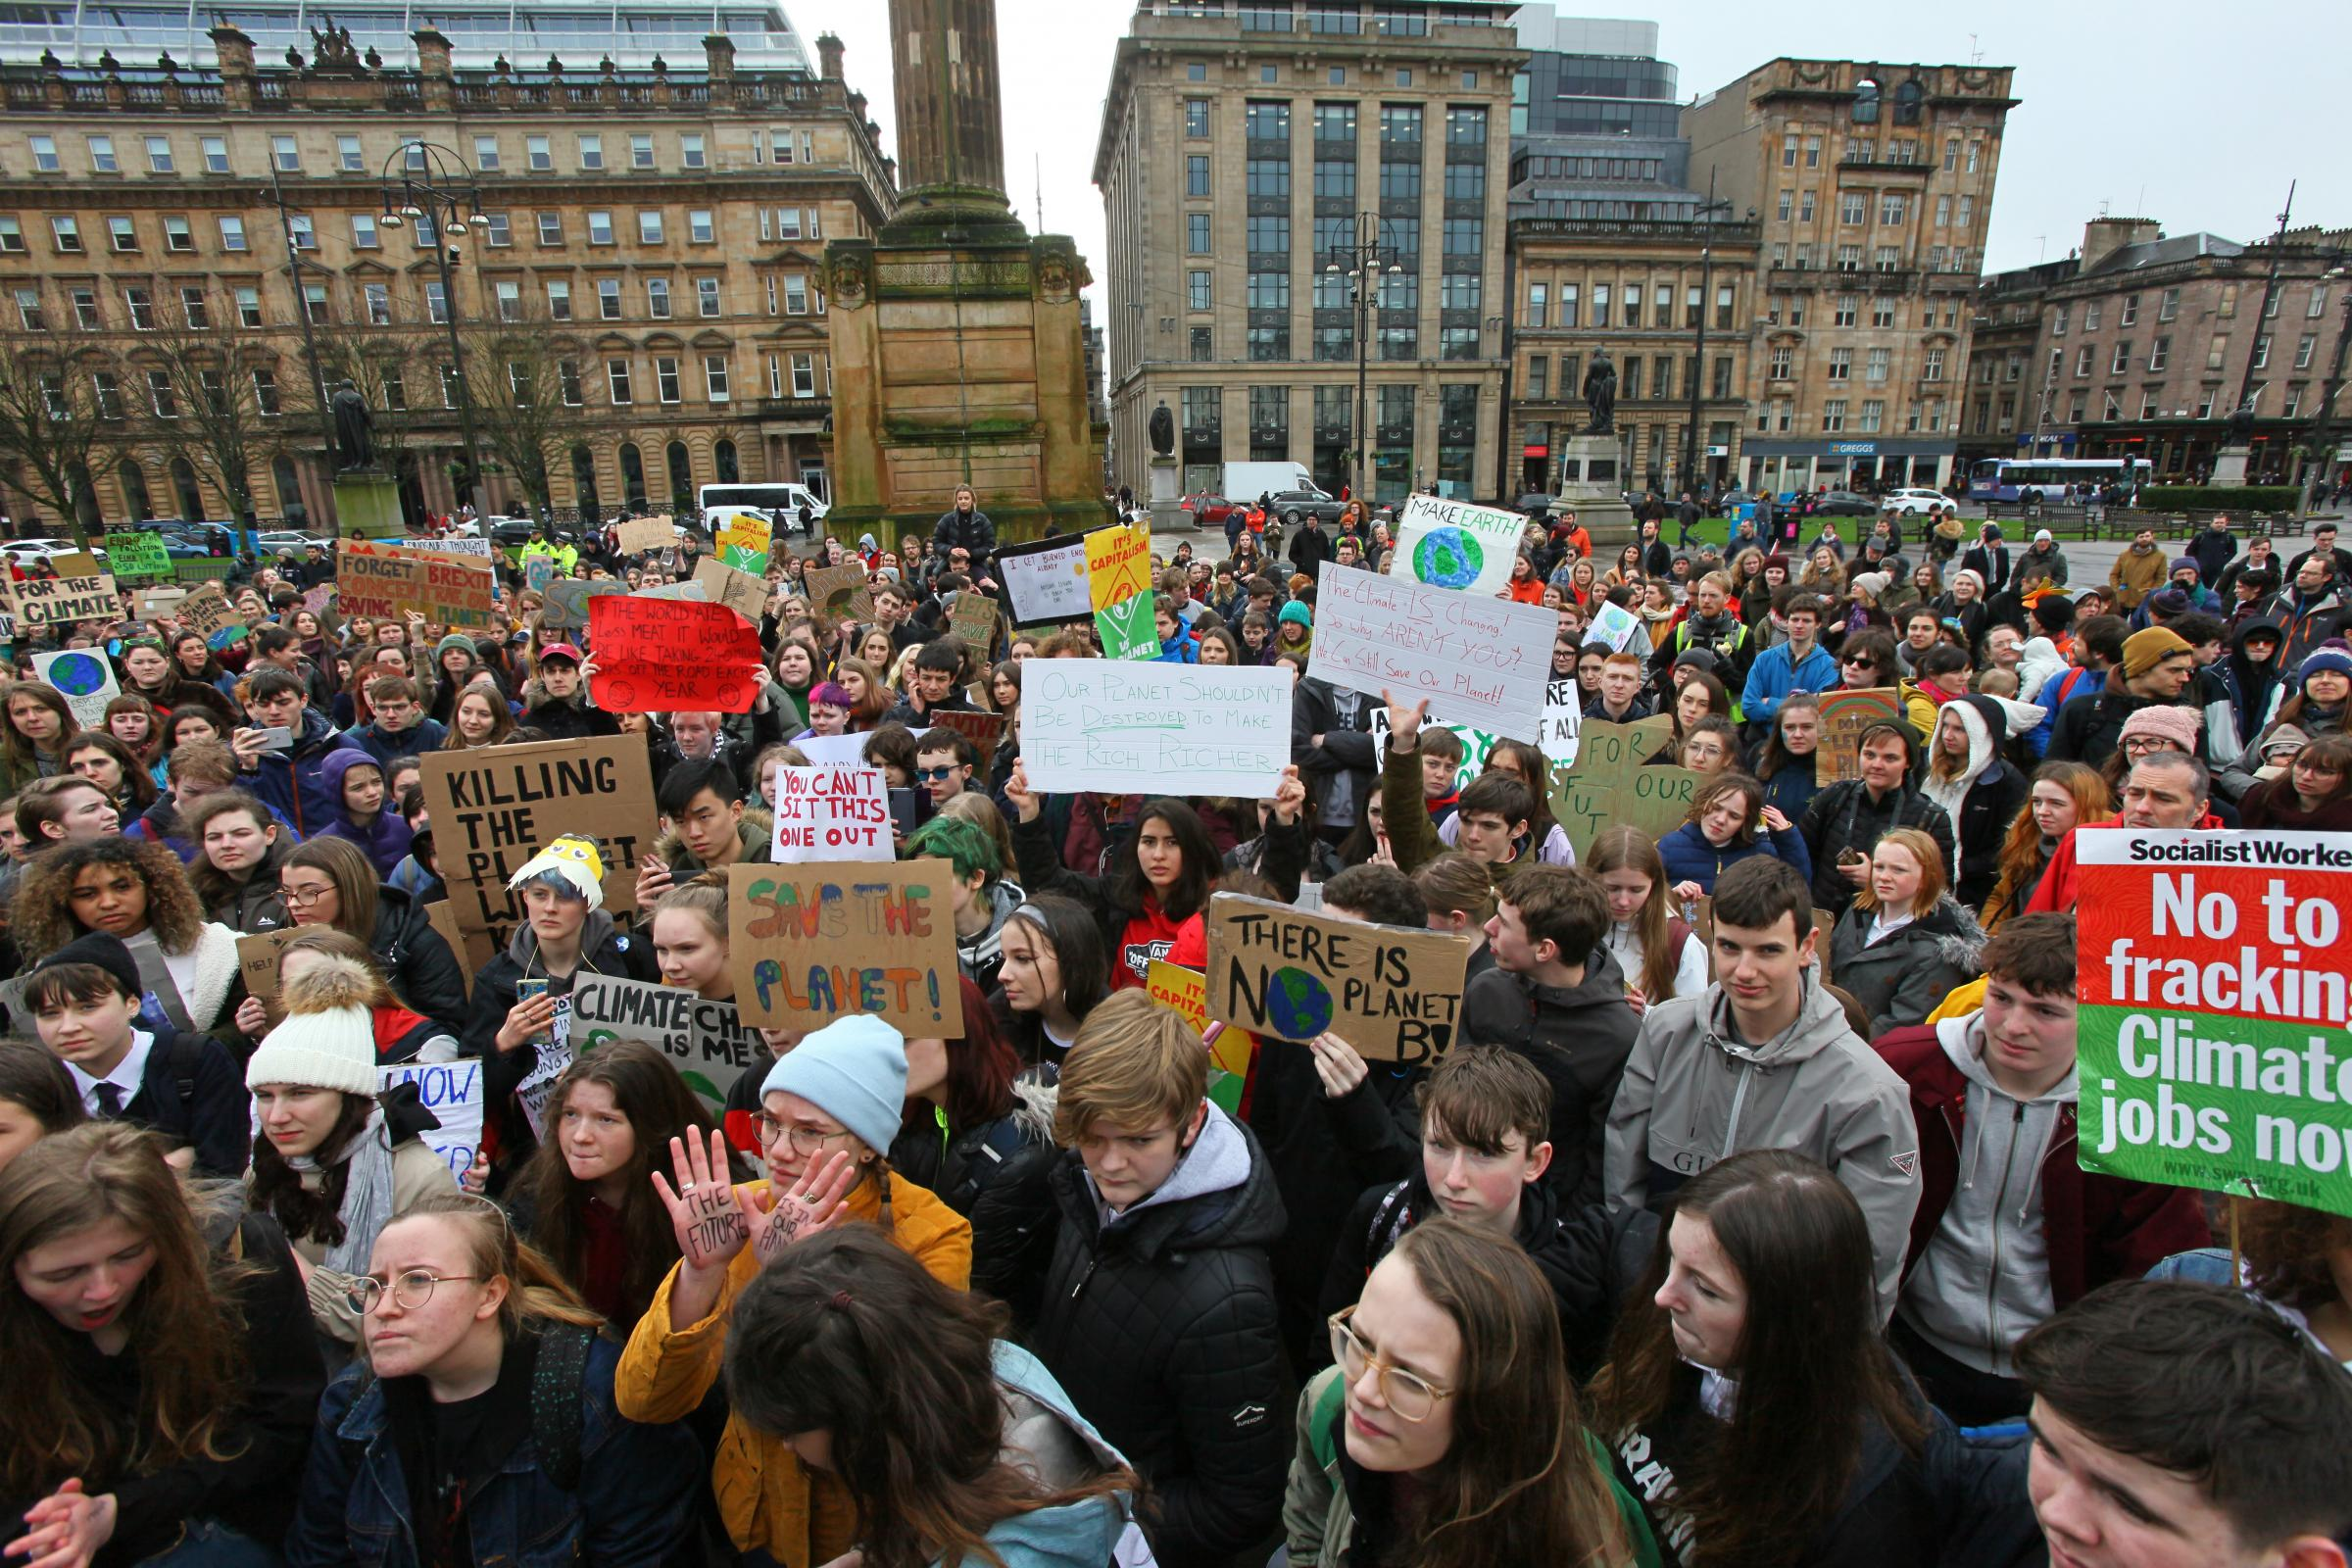 More than 2000 Scots gathered for a protest in Glasgow's George Square